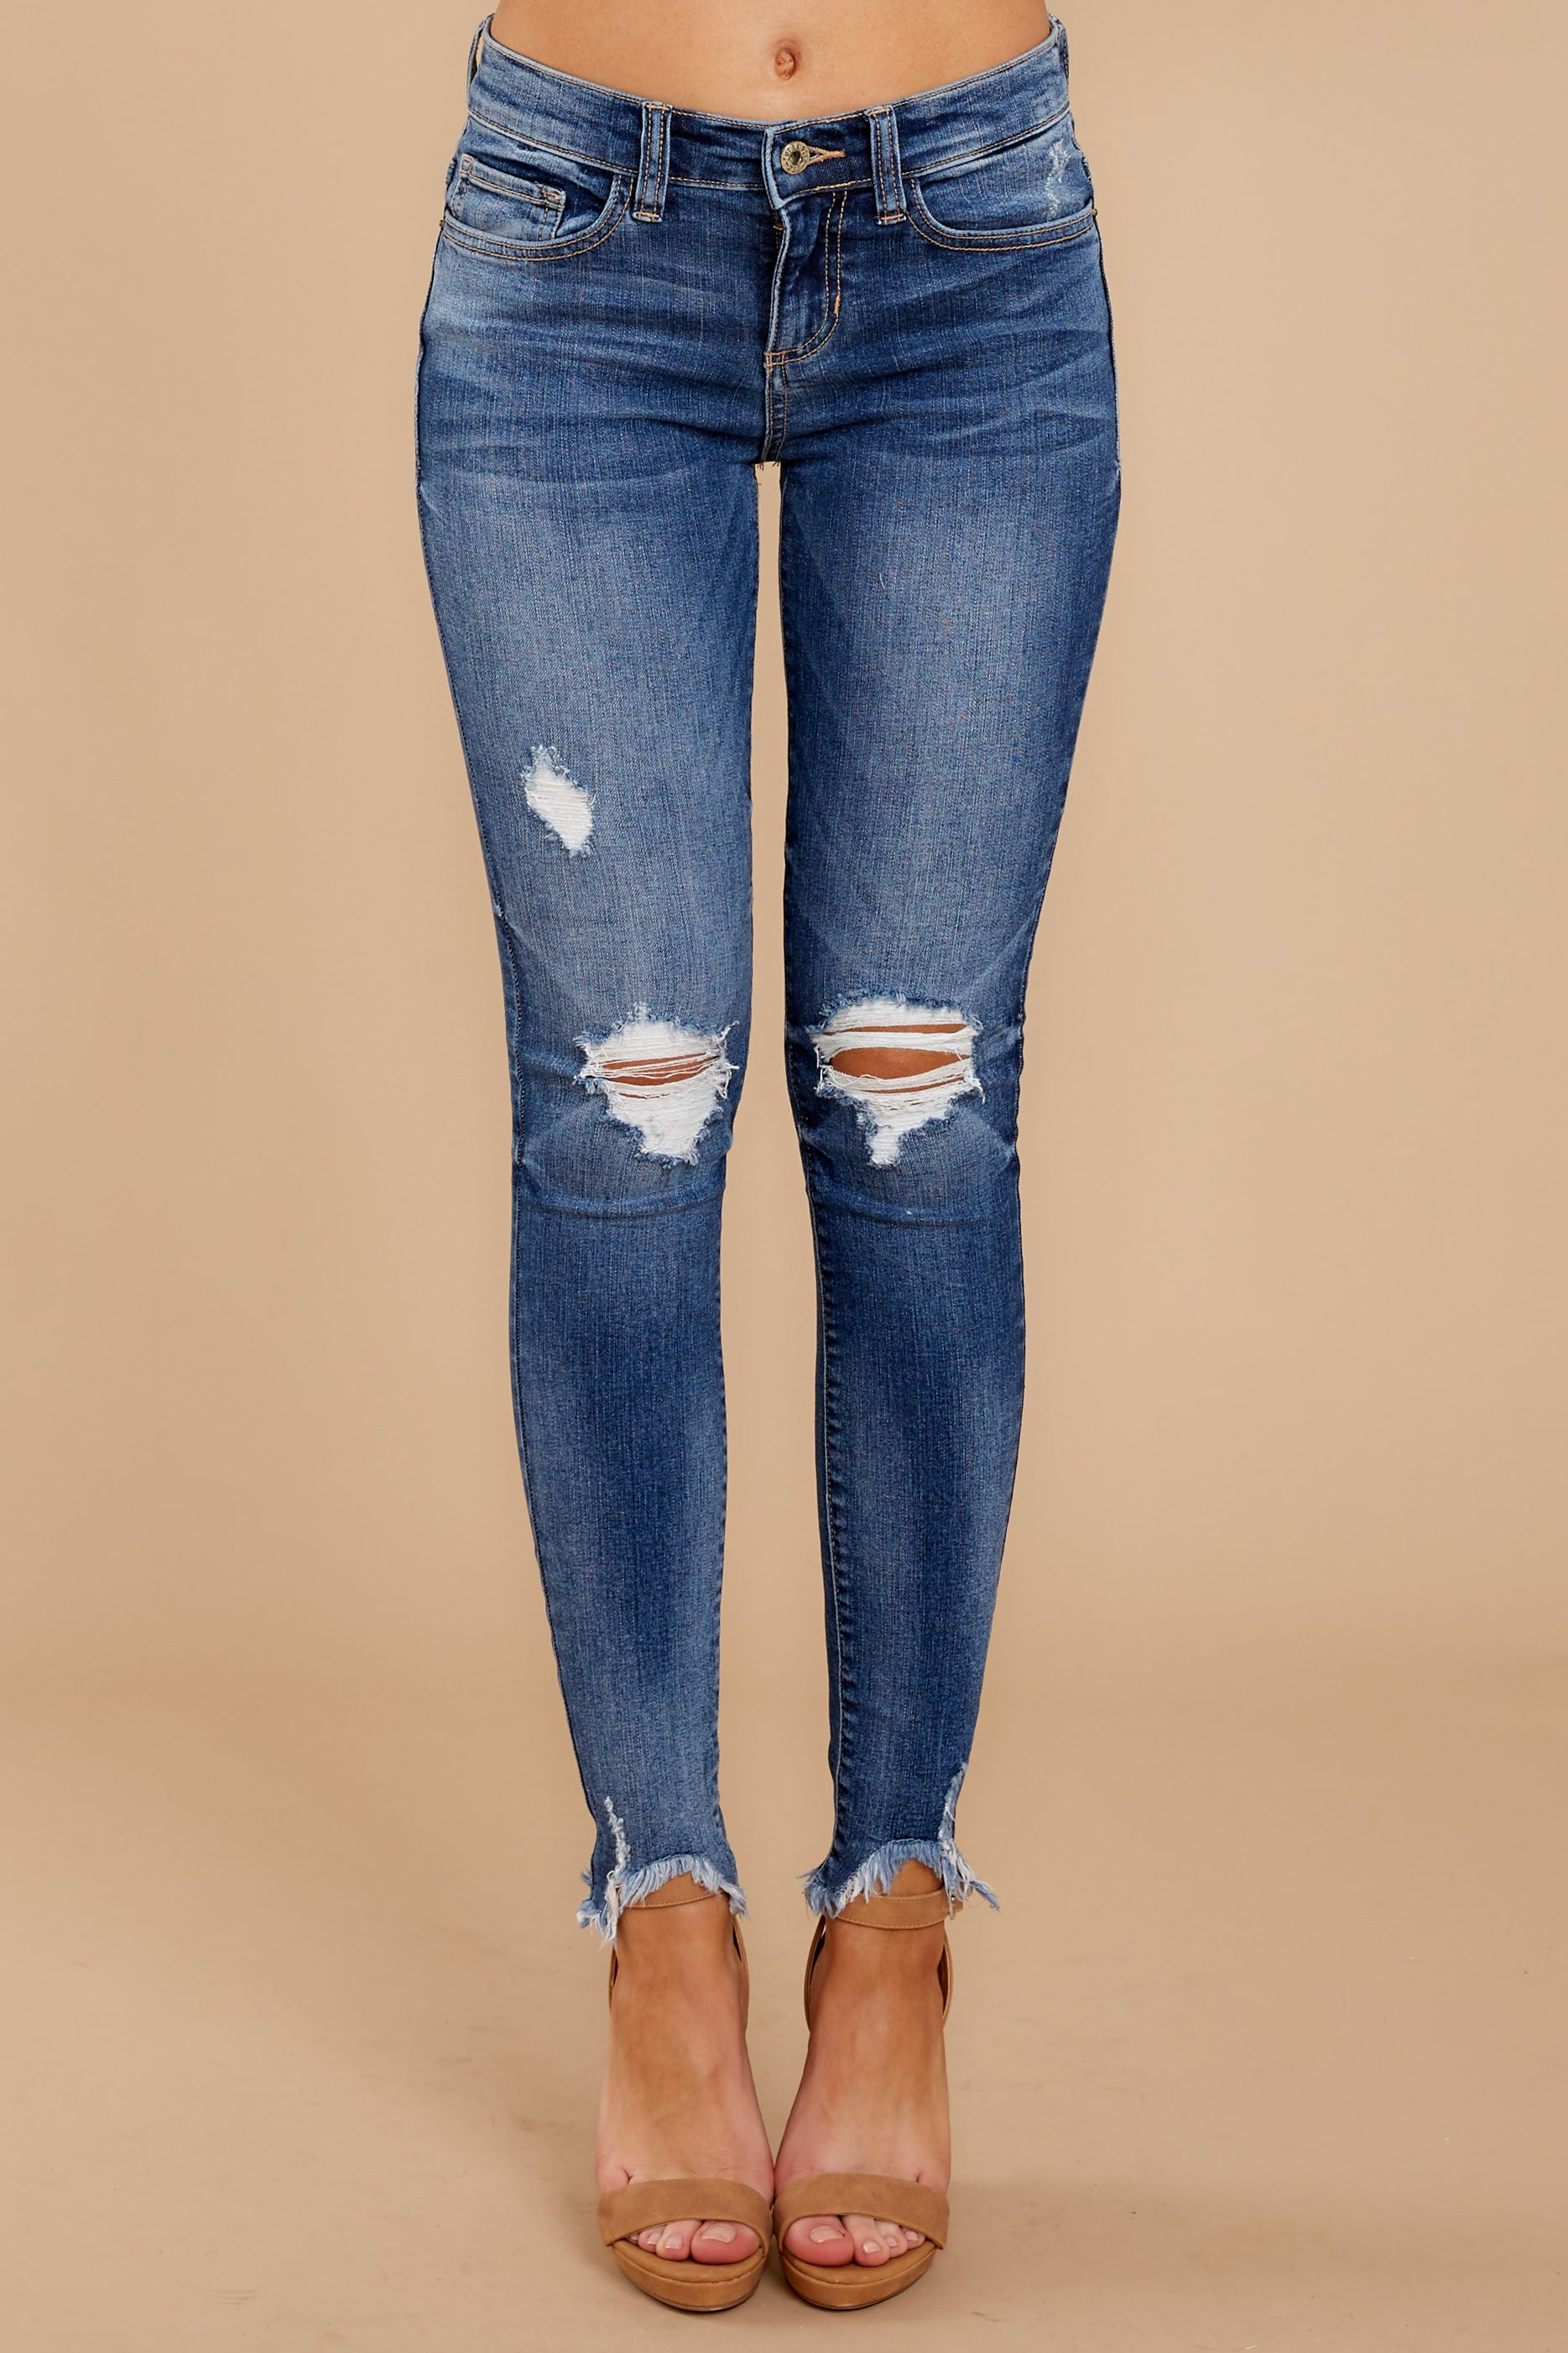 2 Not My First Time Medium Wash Distressed Skinny Jeans at reddressboutique.com